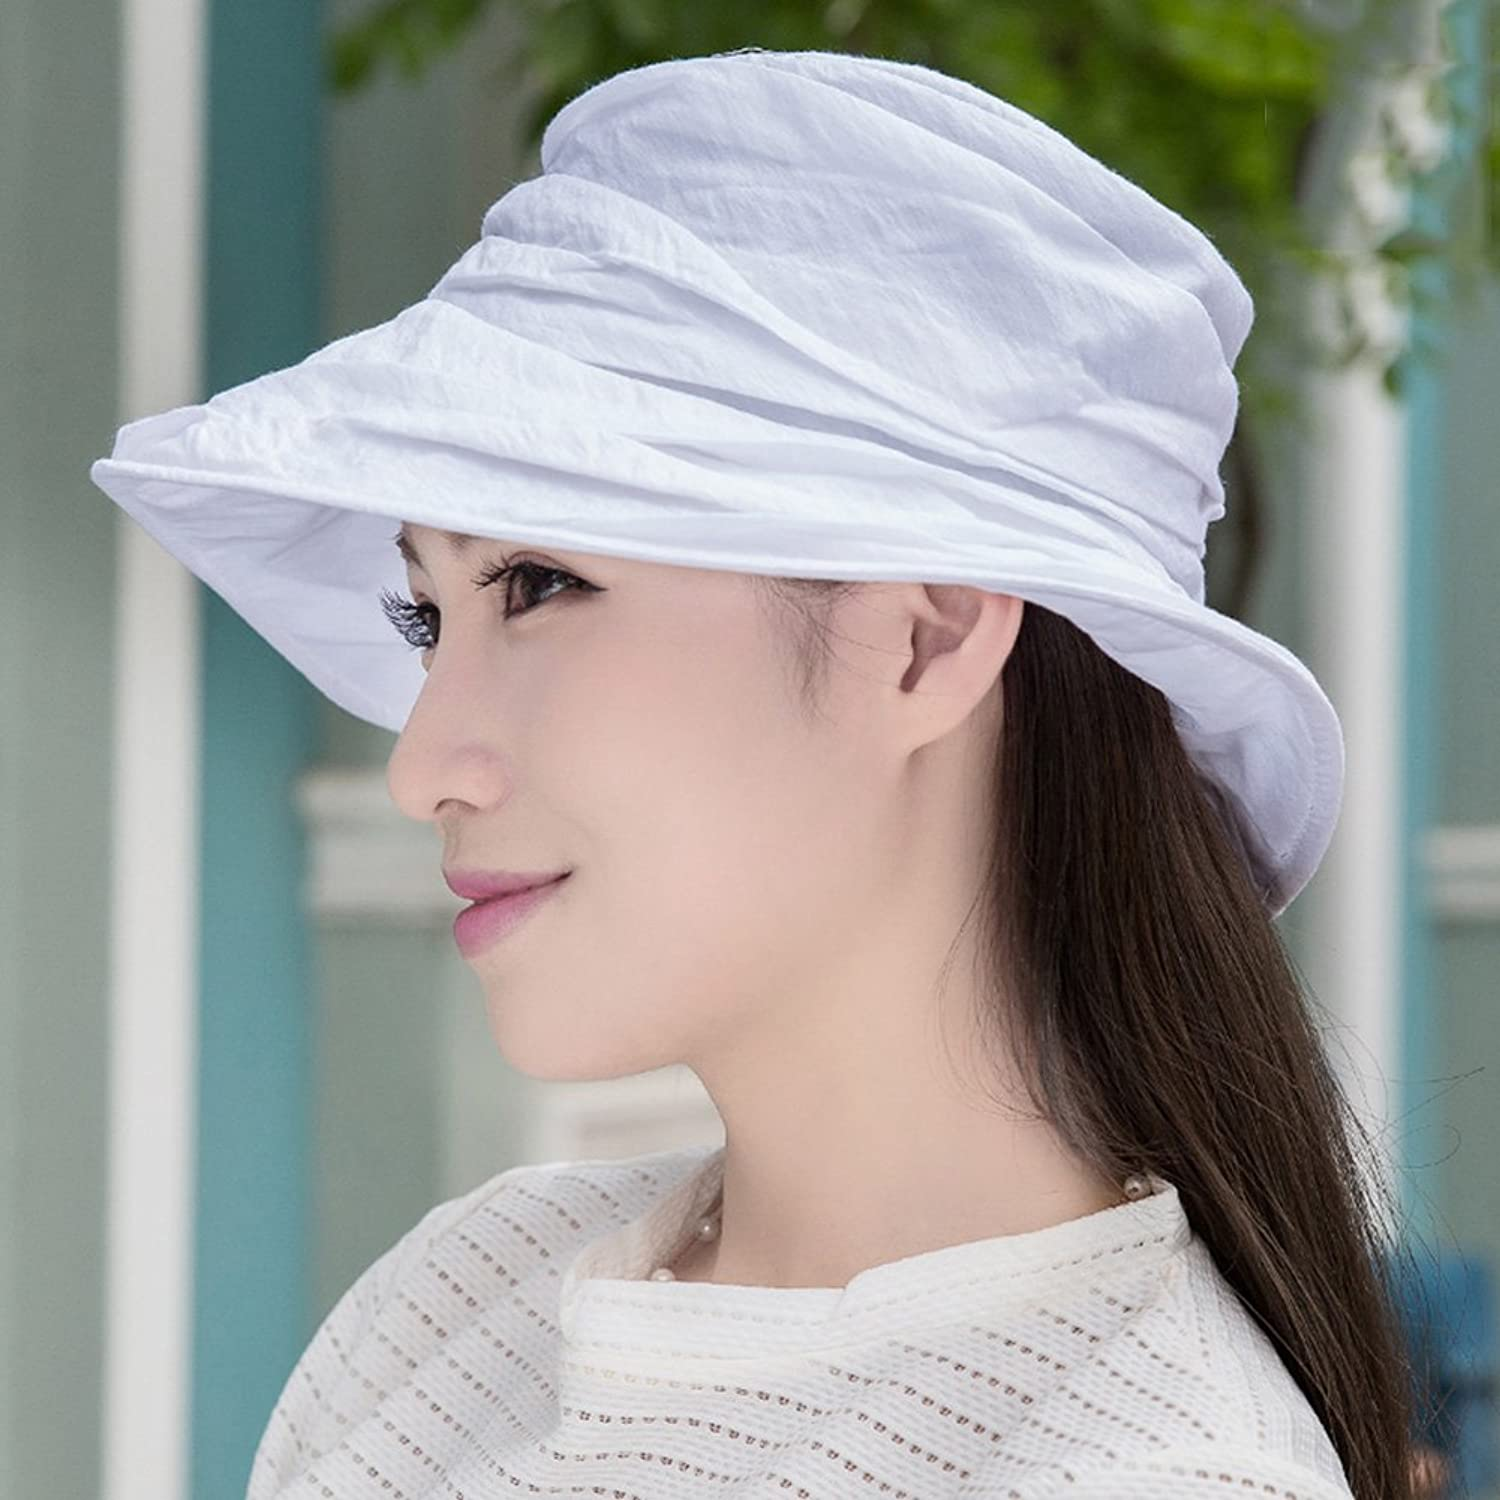 YD Hat Summer Hat, Women Sun Hats All-Match Sunscreen Floppy Foldable Packable, 16 colors Optional    (color   9 )